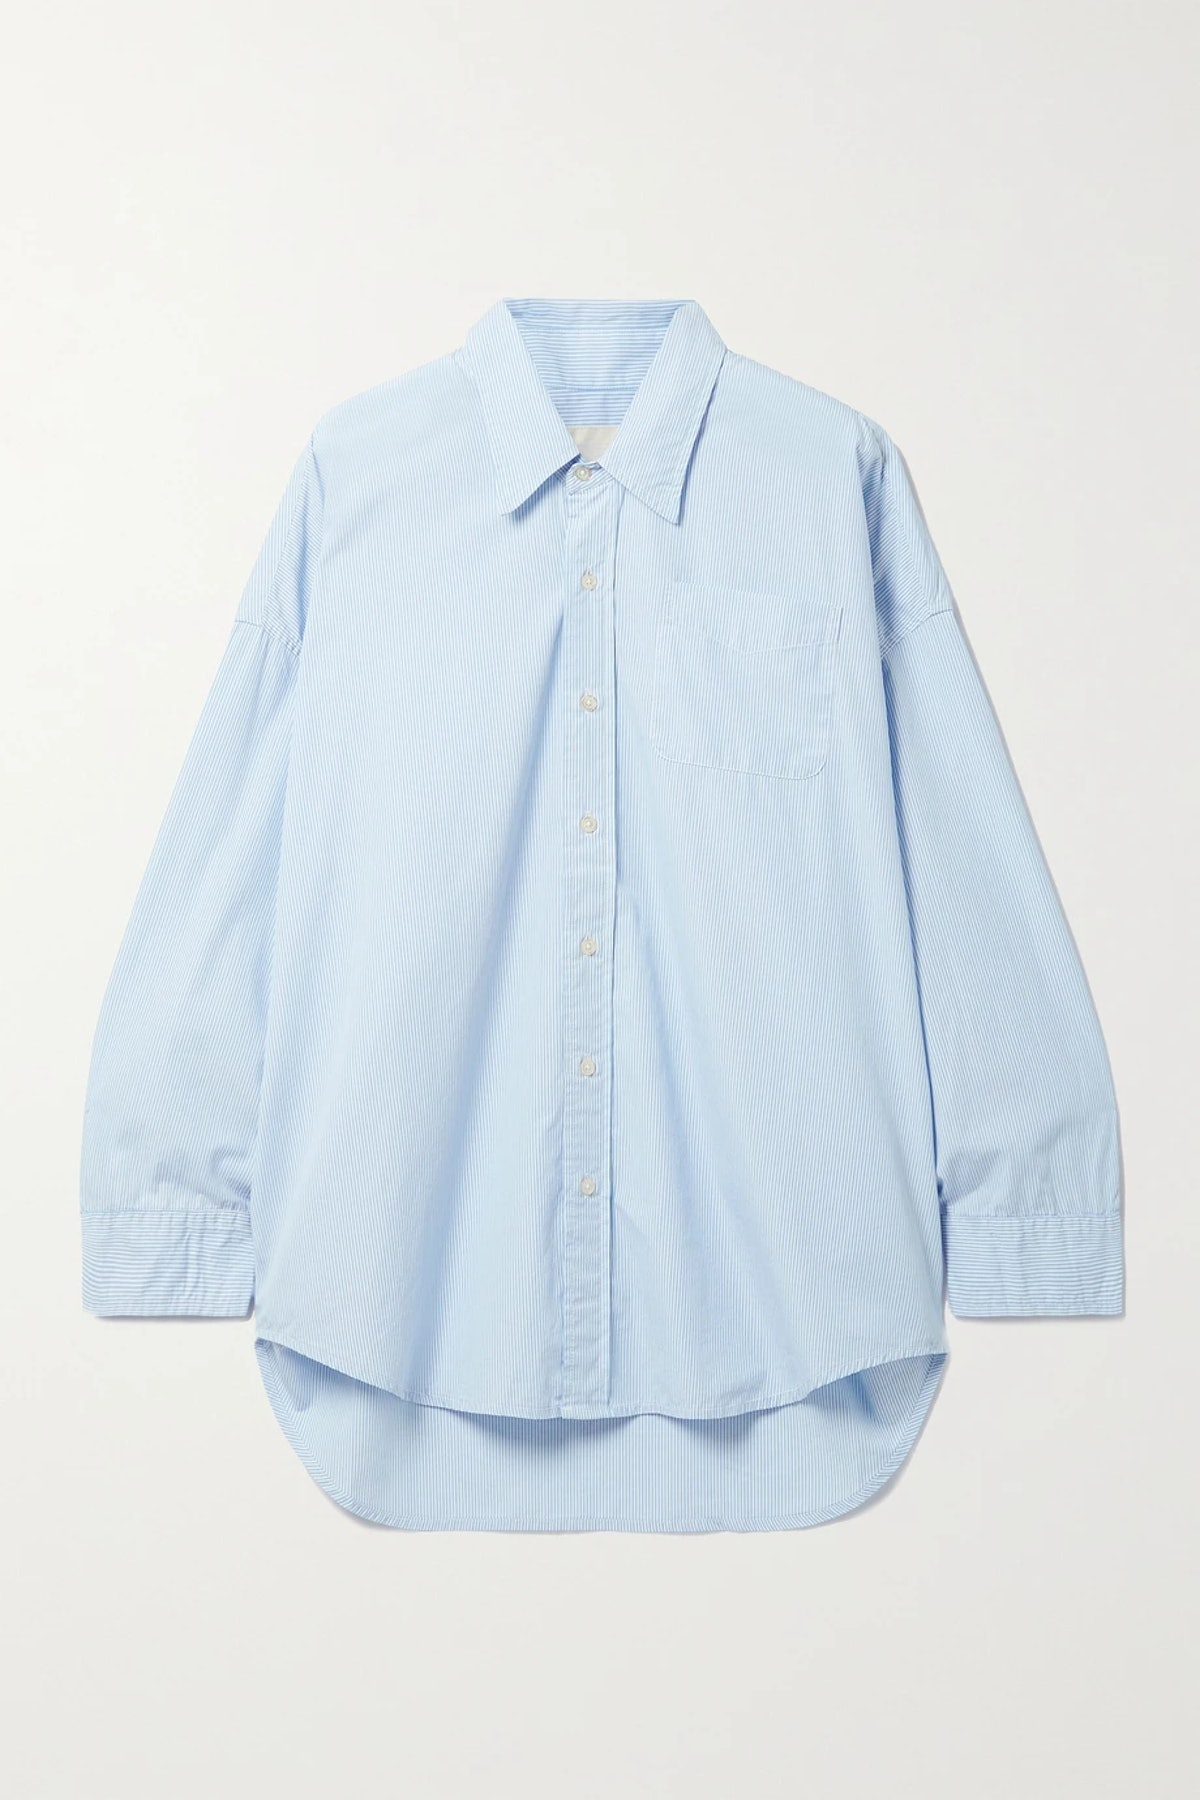 Oversized striped cotton Oxford shirt from R13, available on Net-a-Porter.